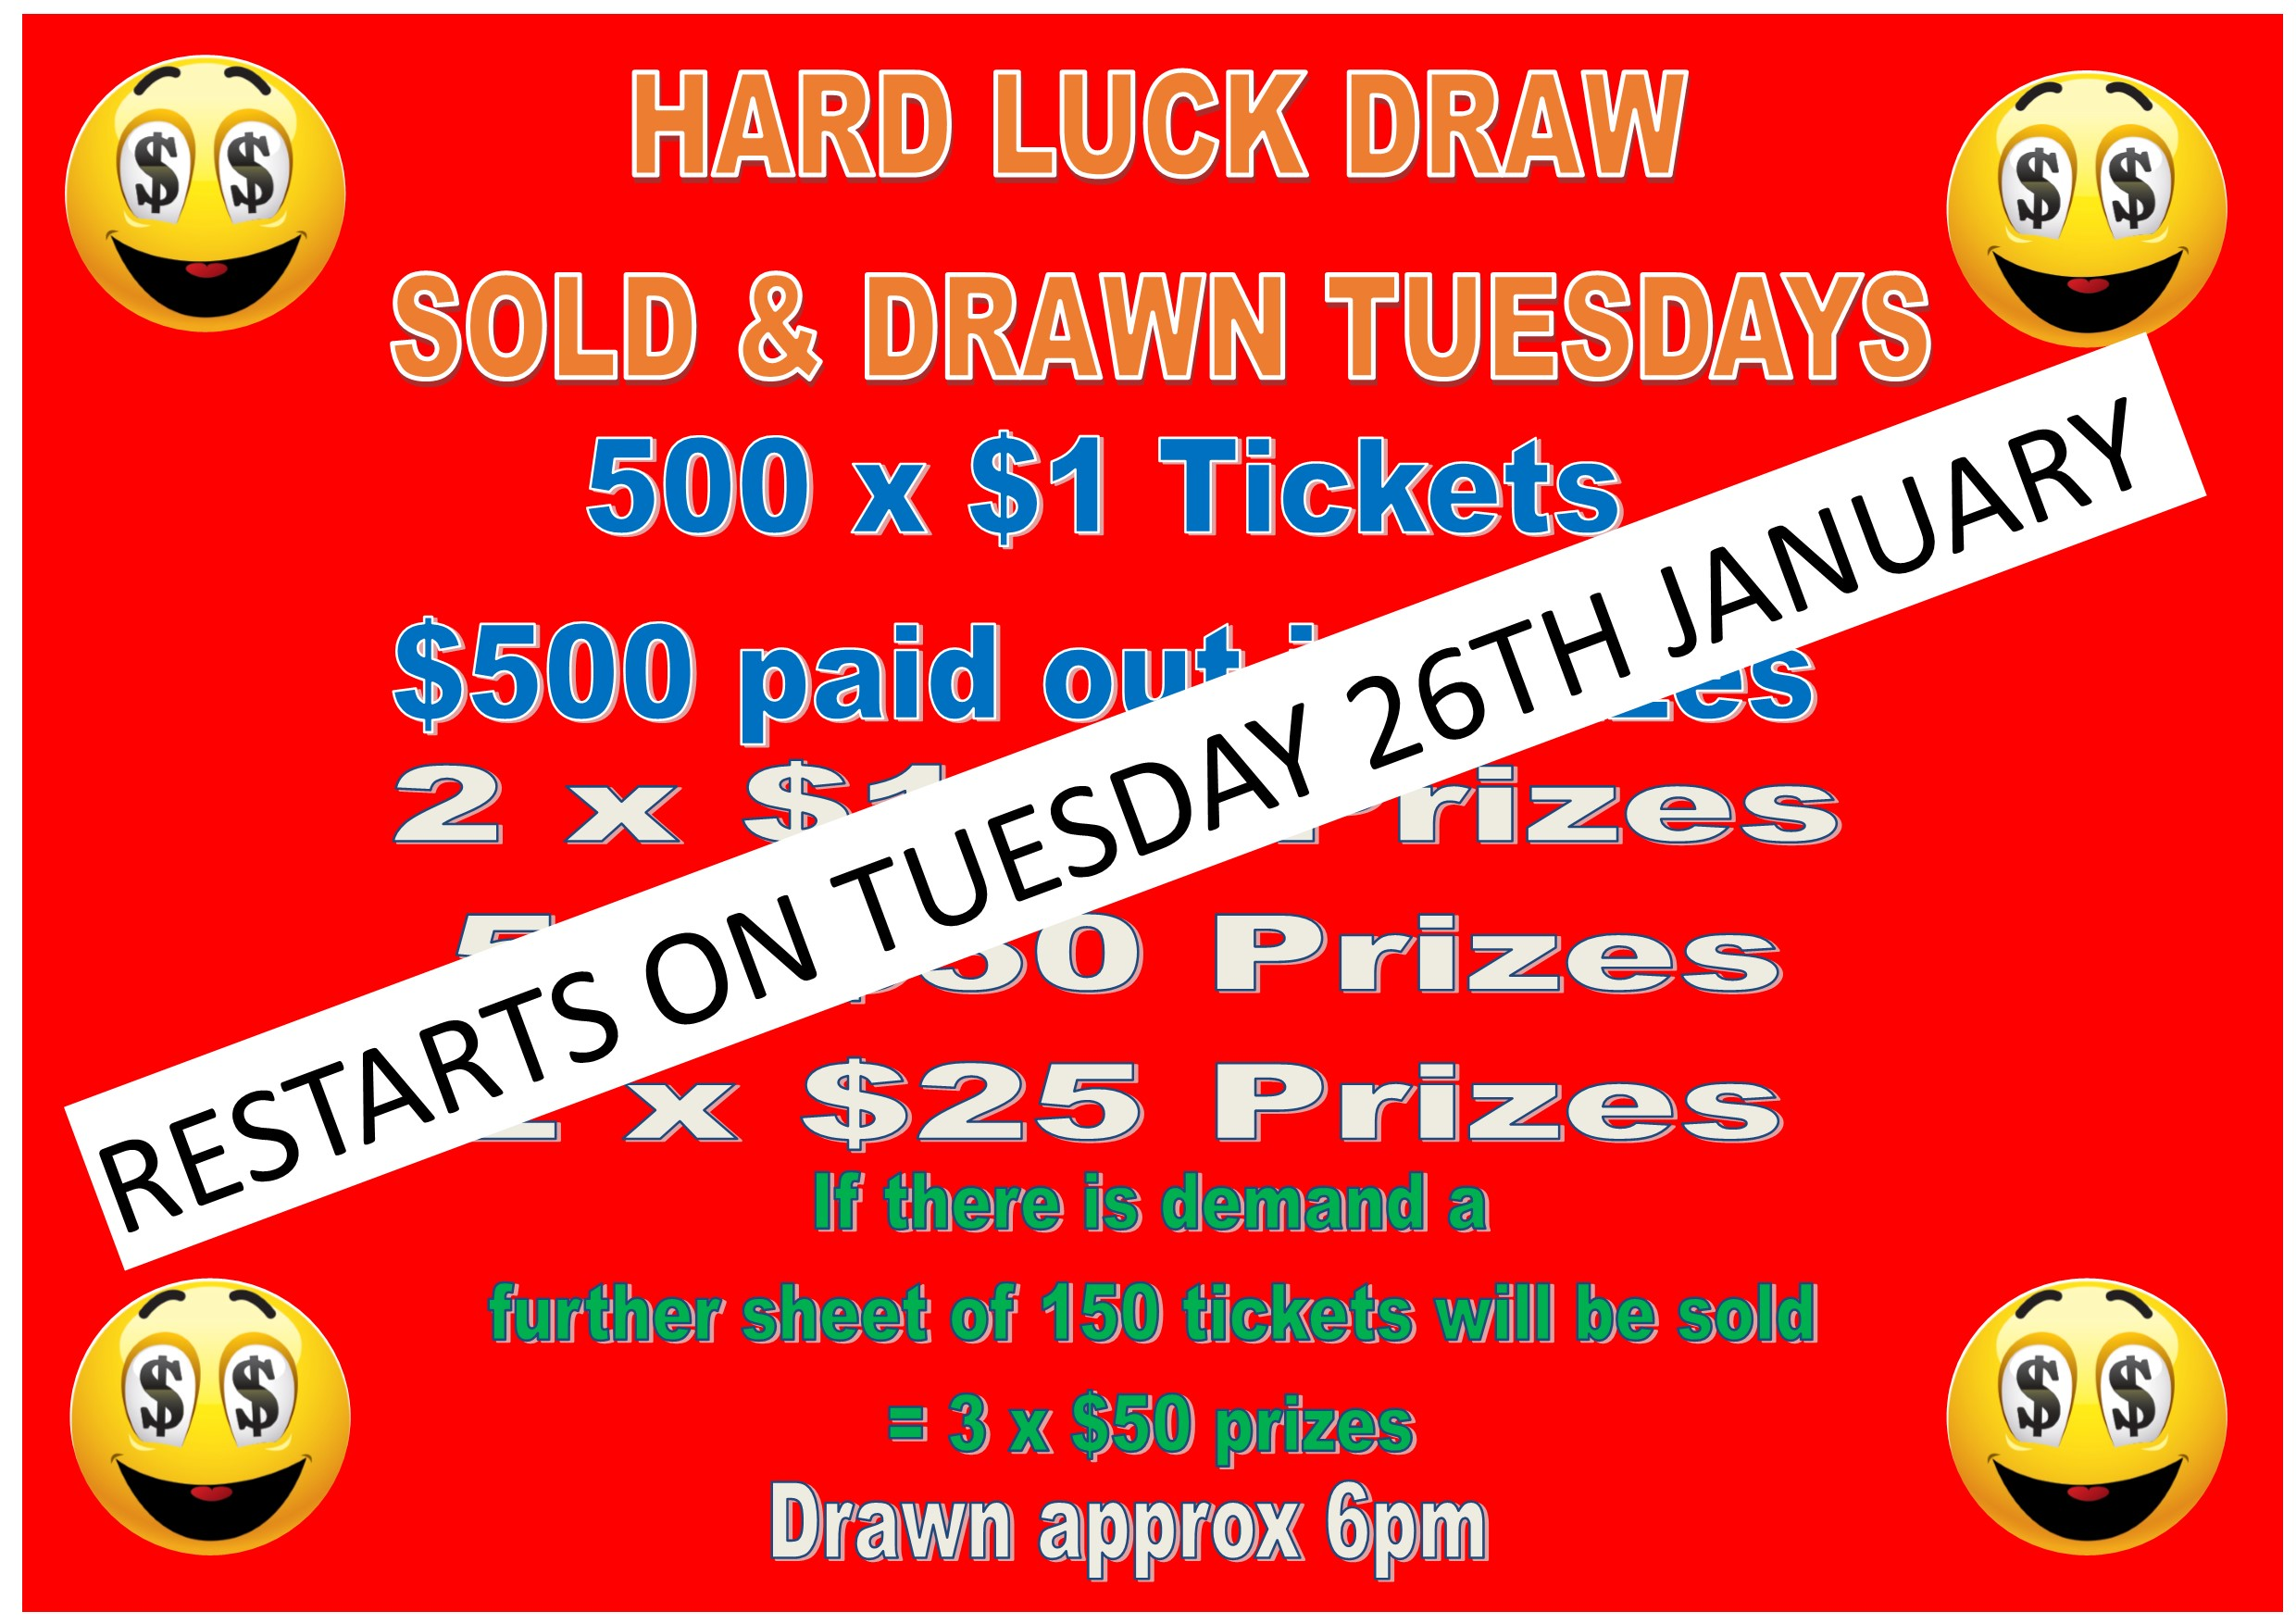 Hard Luck Draw Restarts 26th January 2021